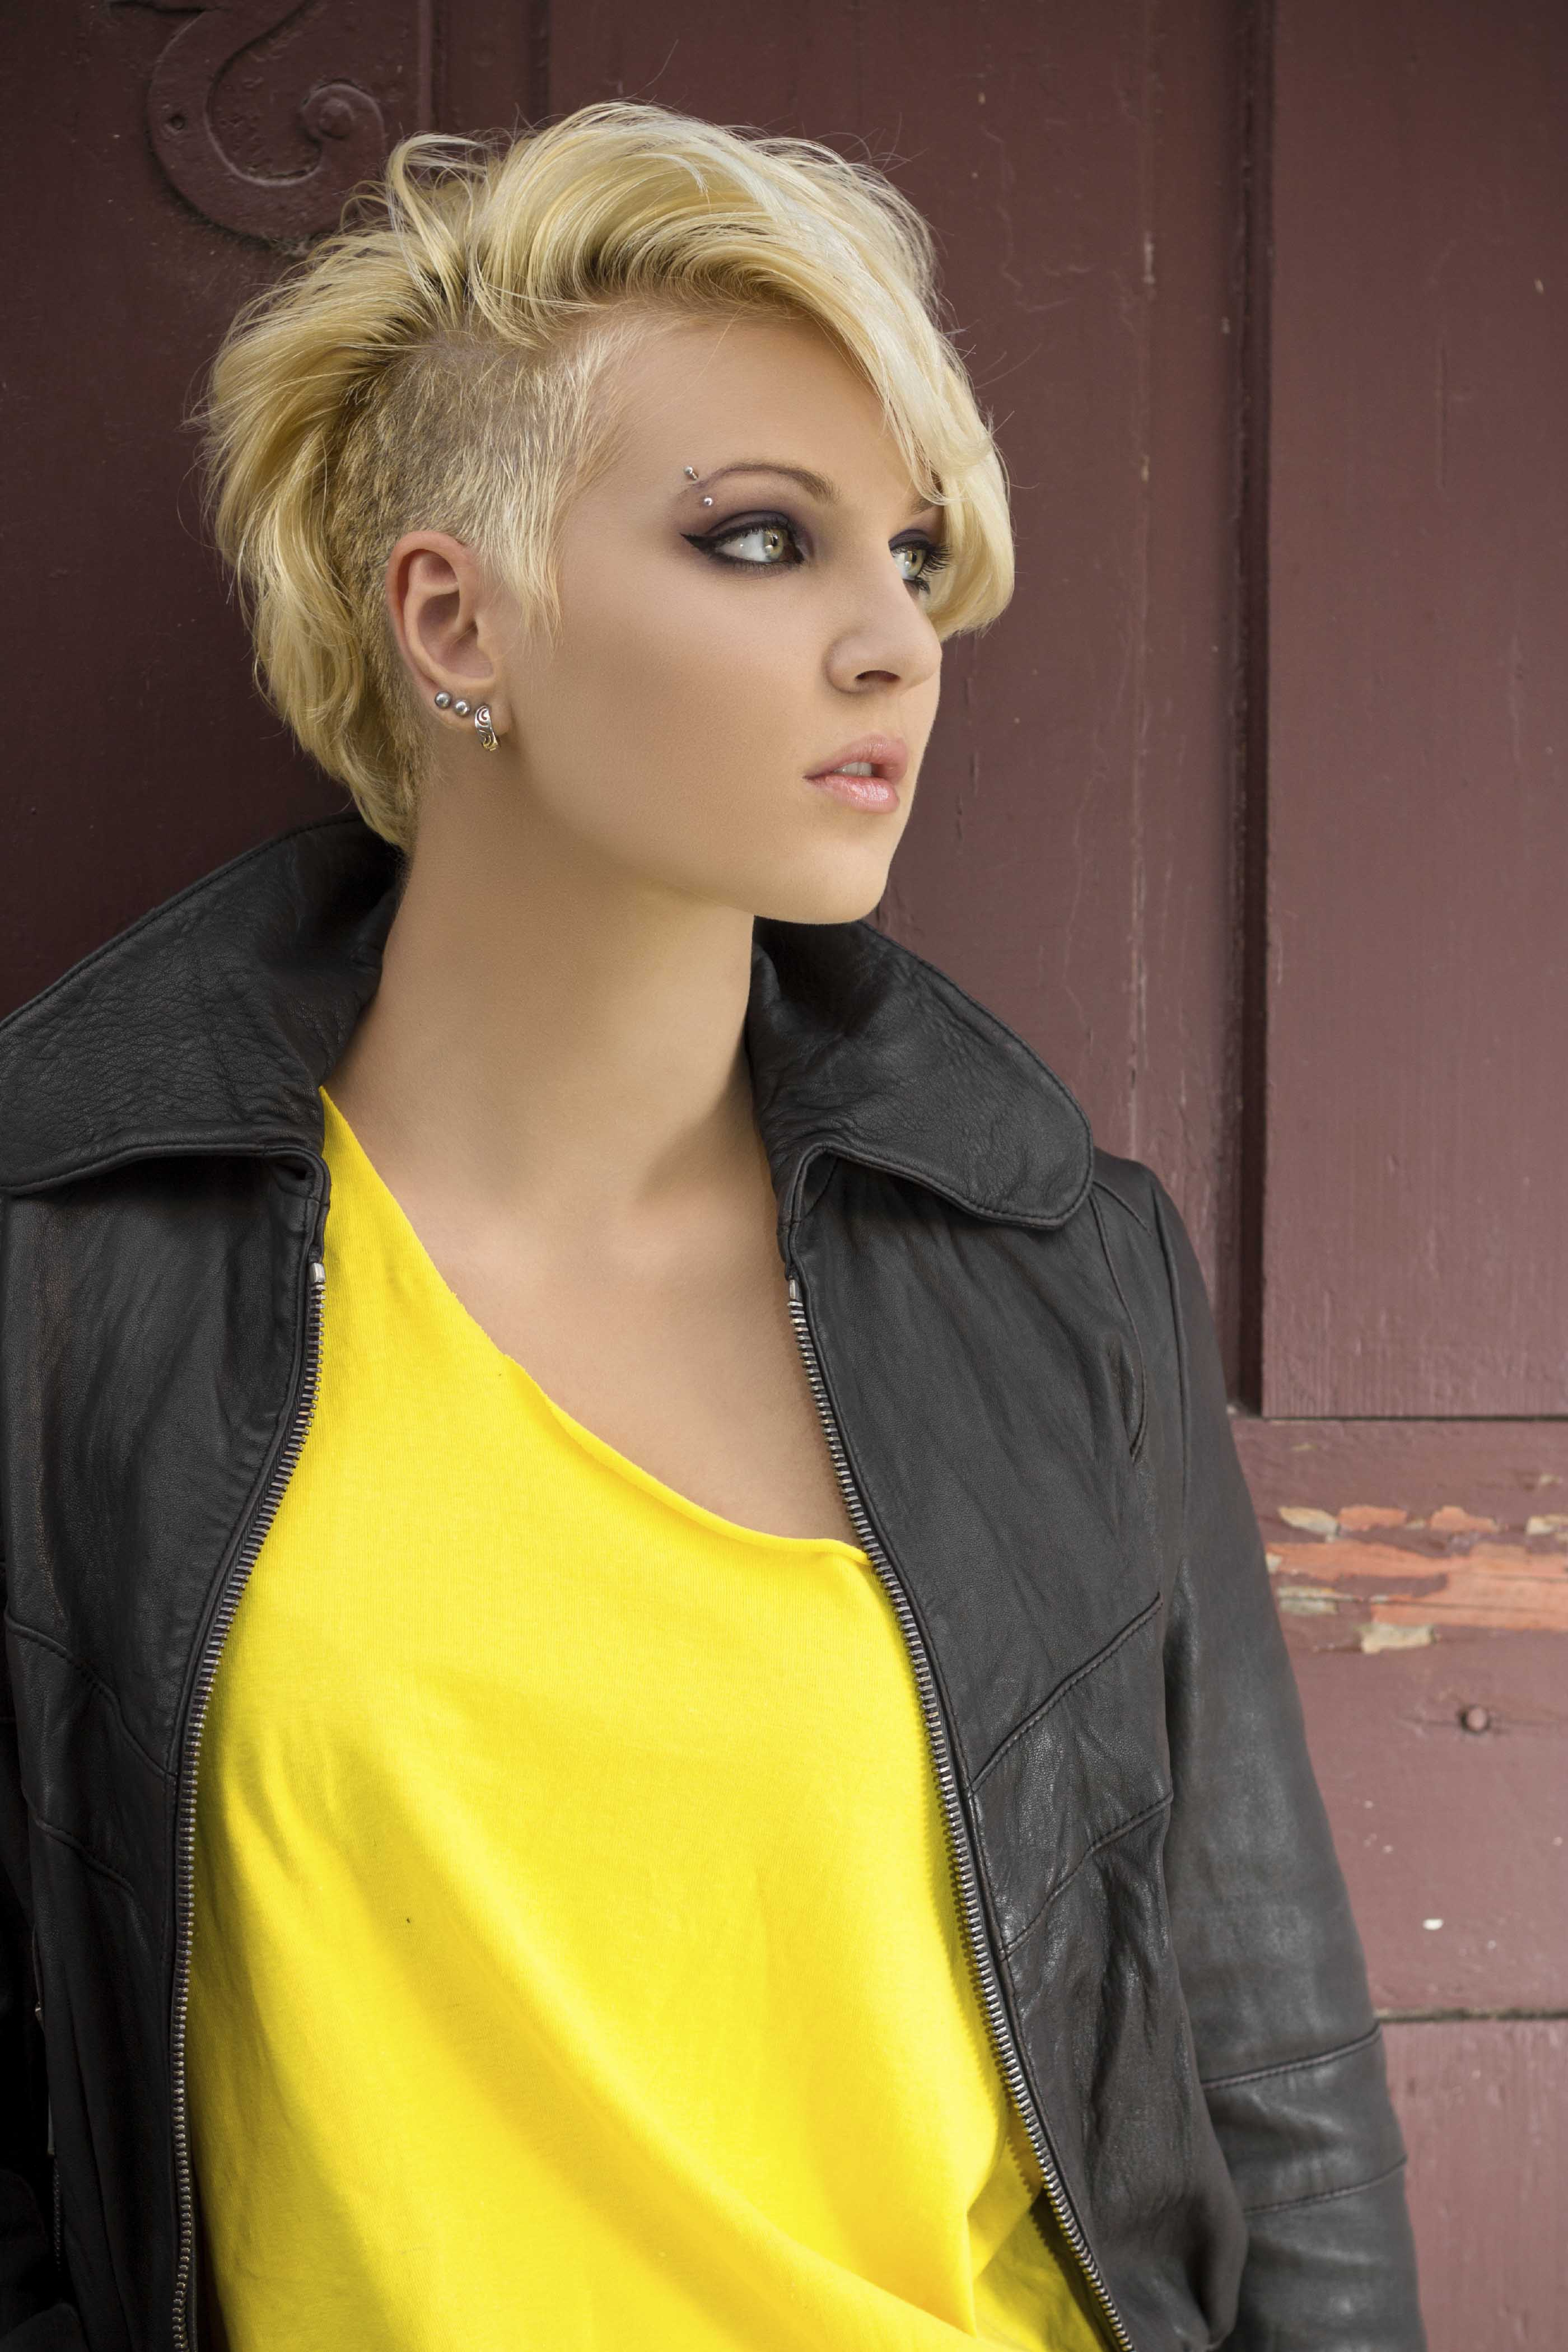 8 Fashionable Mohawk Hairstyles For Women: From Haute To Head Turning For Short Hairstyles One Side Shaved (View 20 of 25)